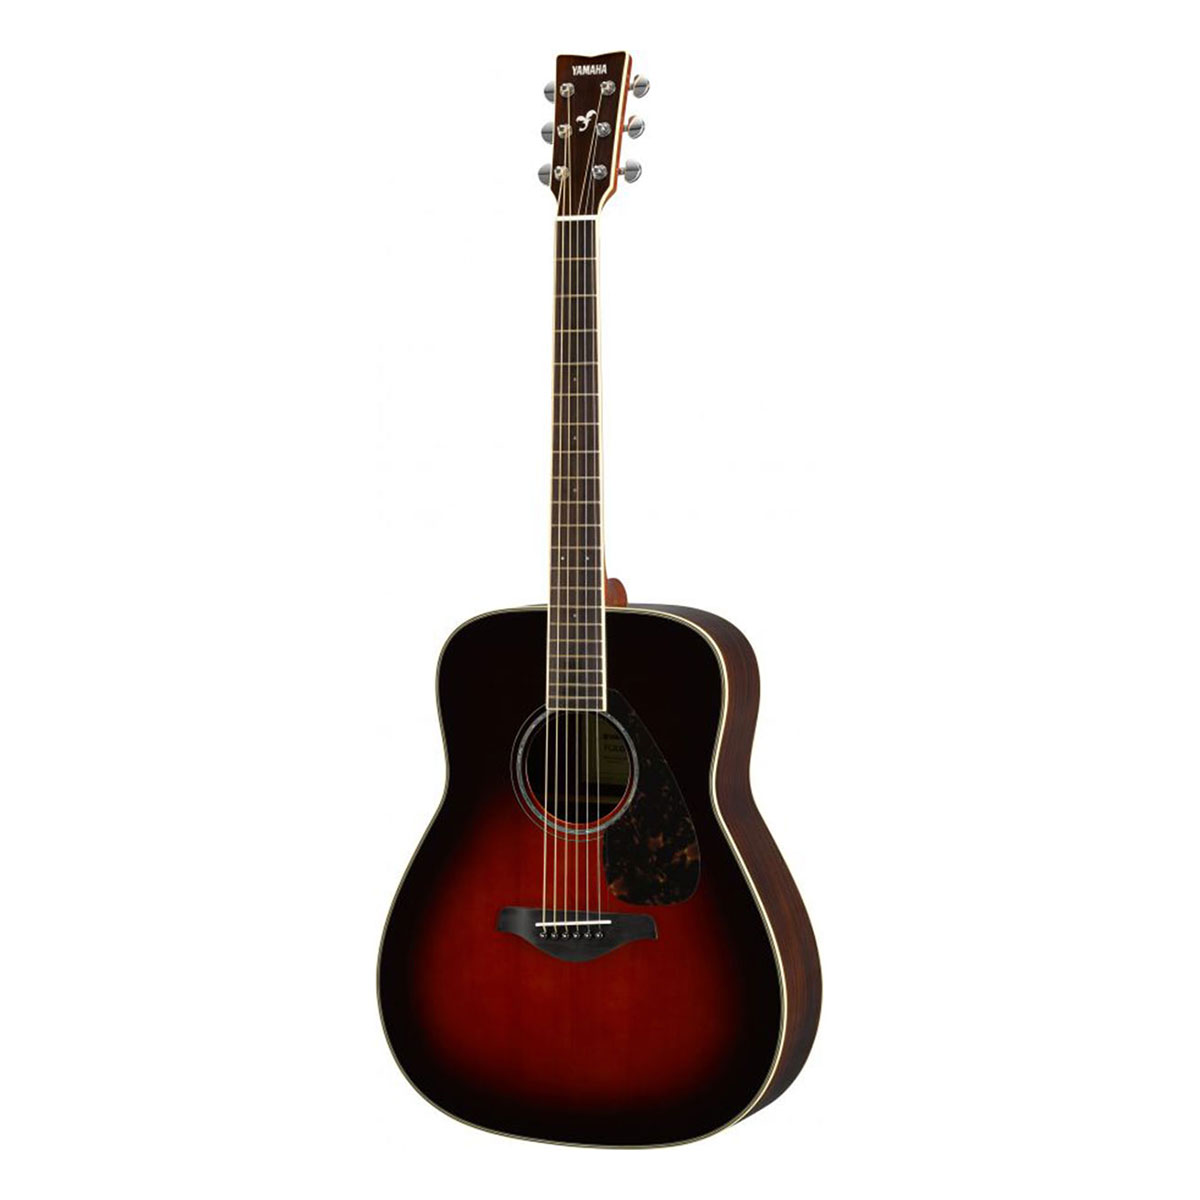 Yamaha - GFG830TBS tobacco brown sb - guitare folk T